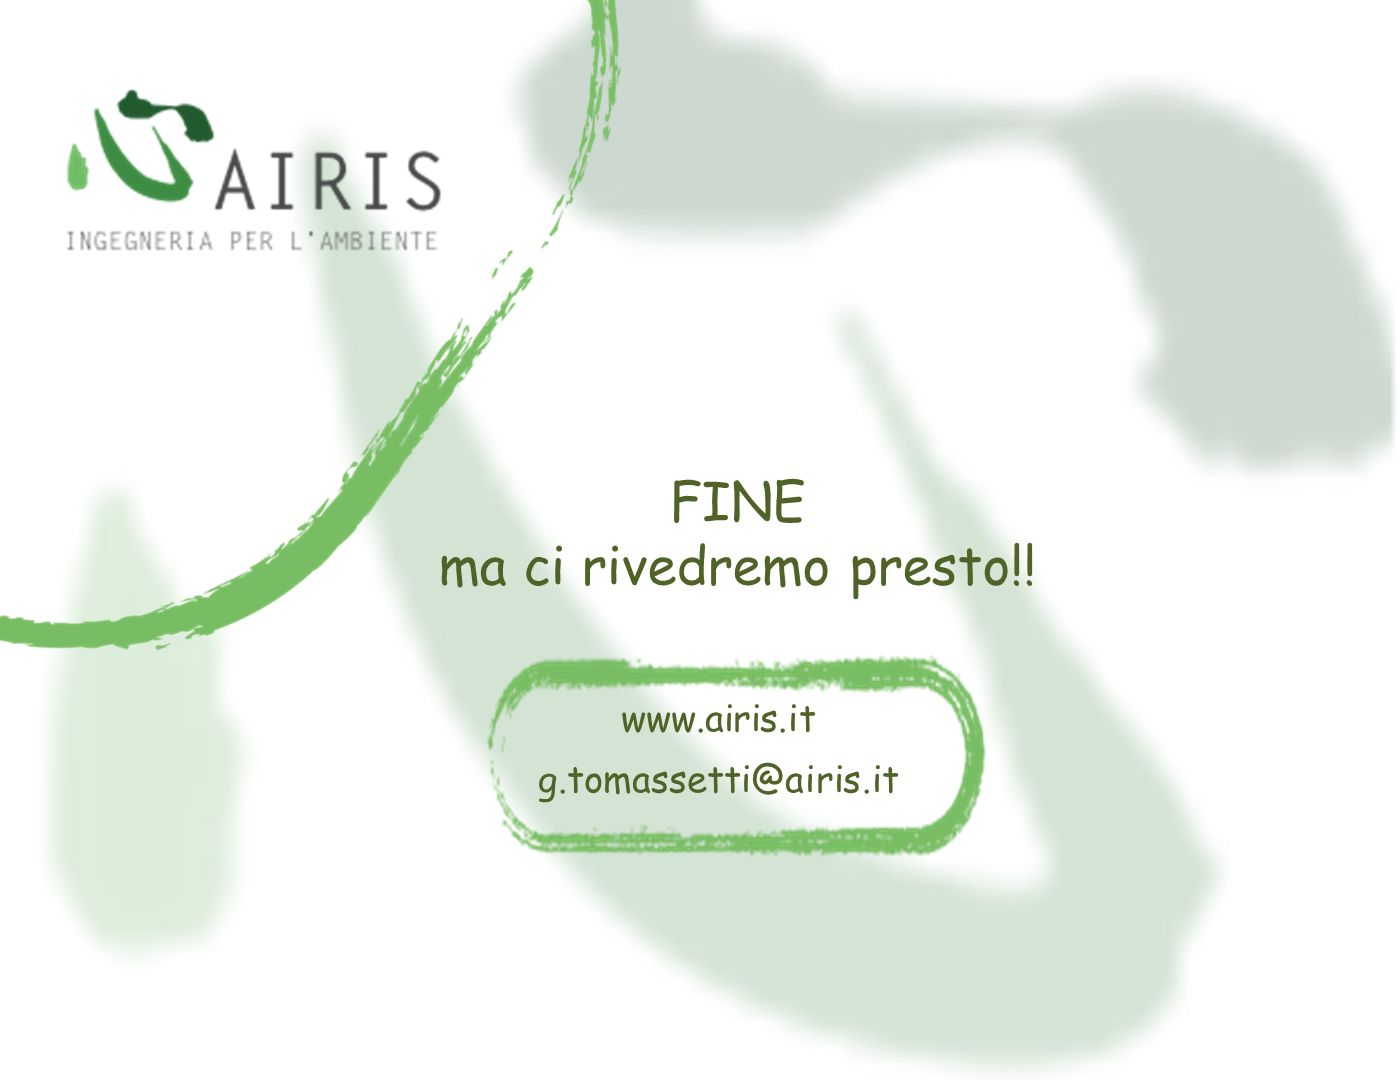 FINE ma ci rivedremo presto!! www.airis.it g.tomassetti@airis.it